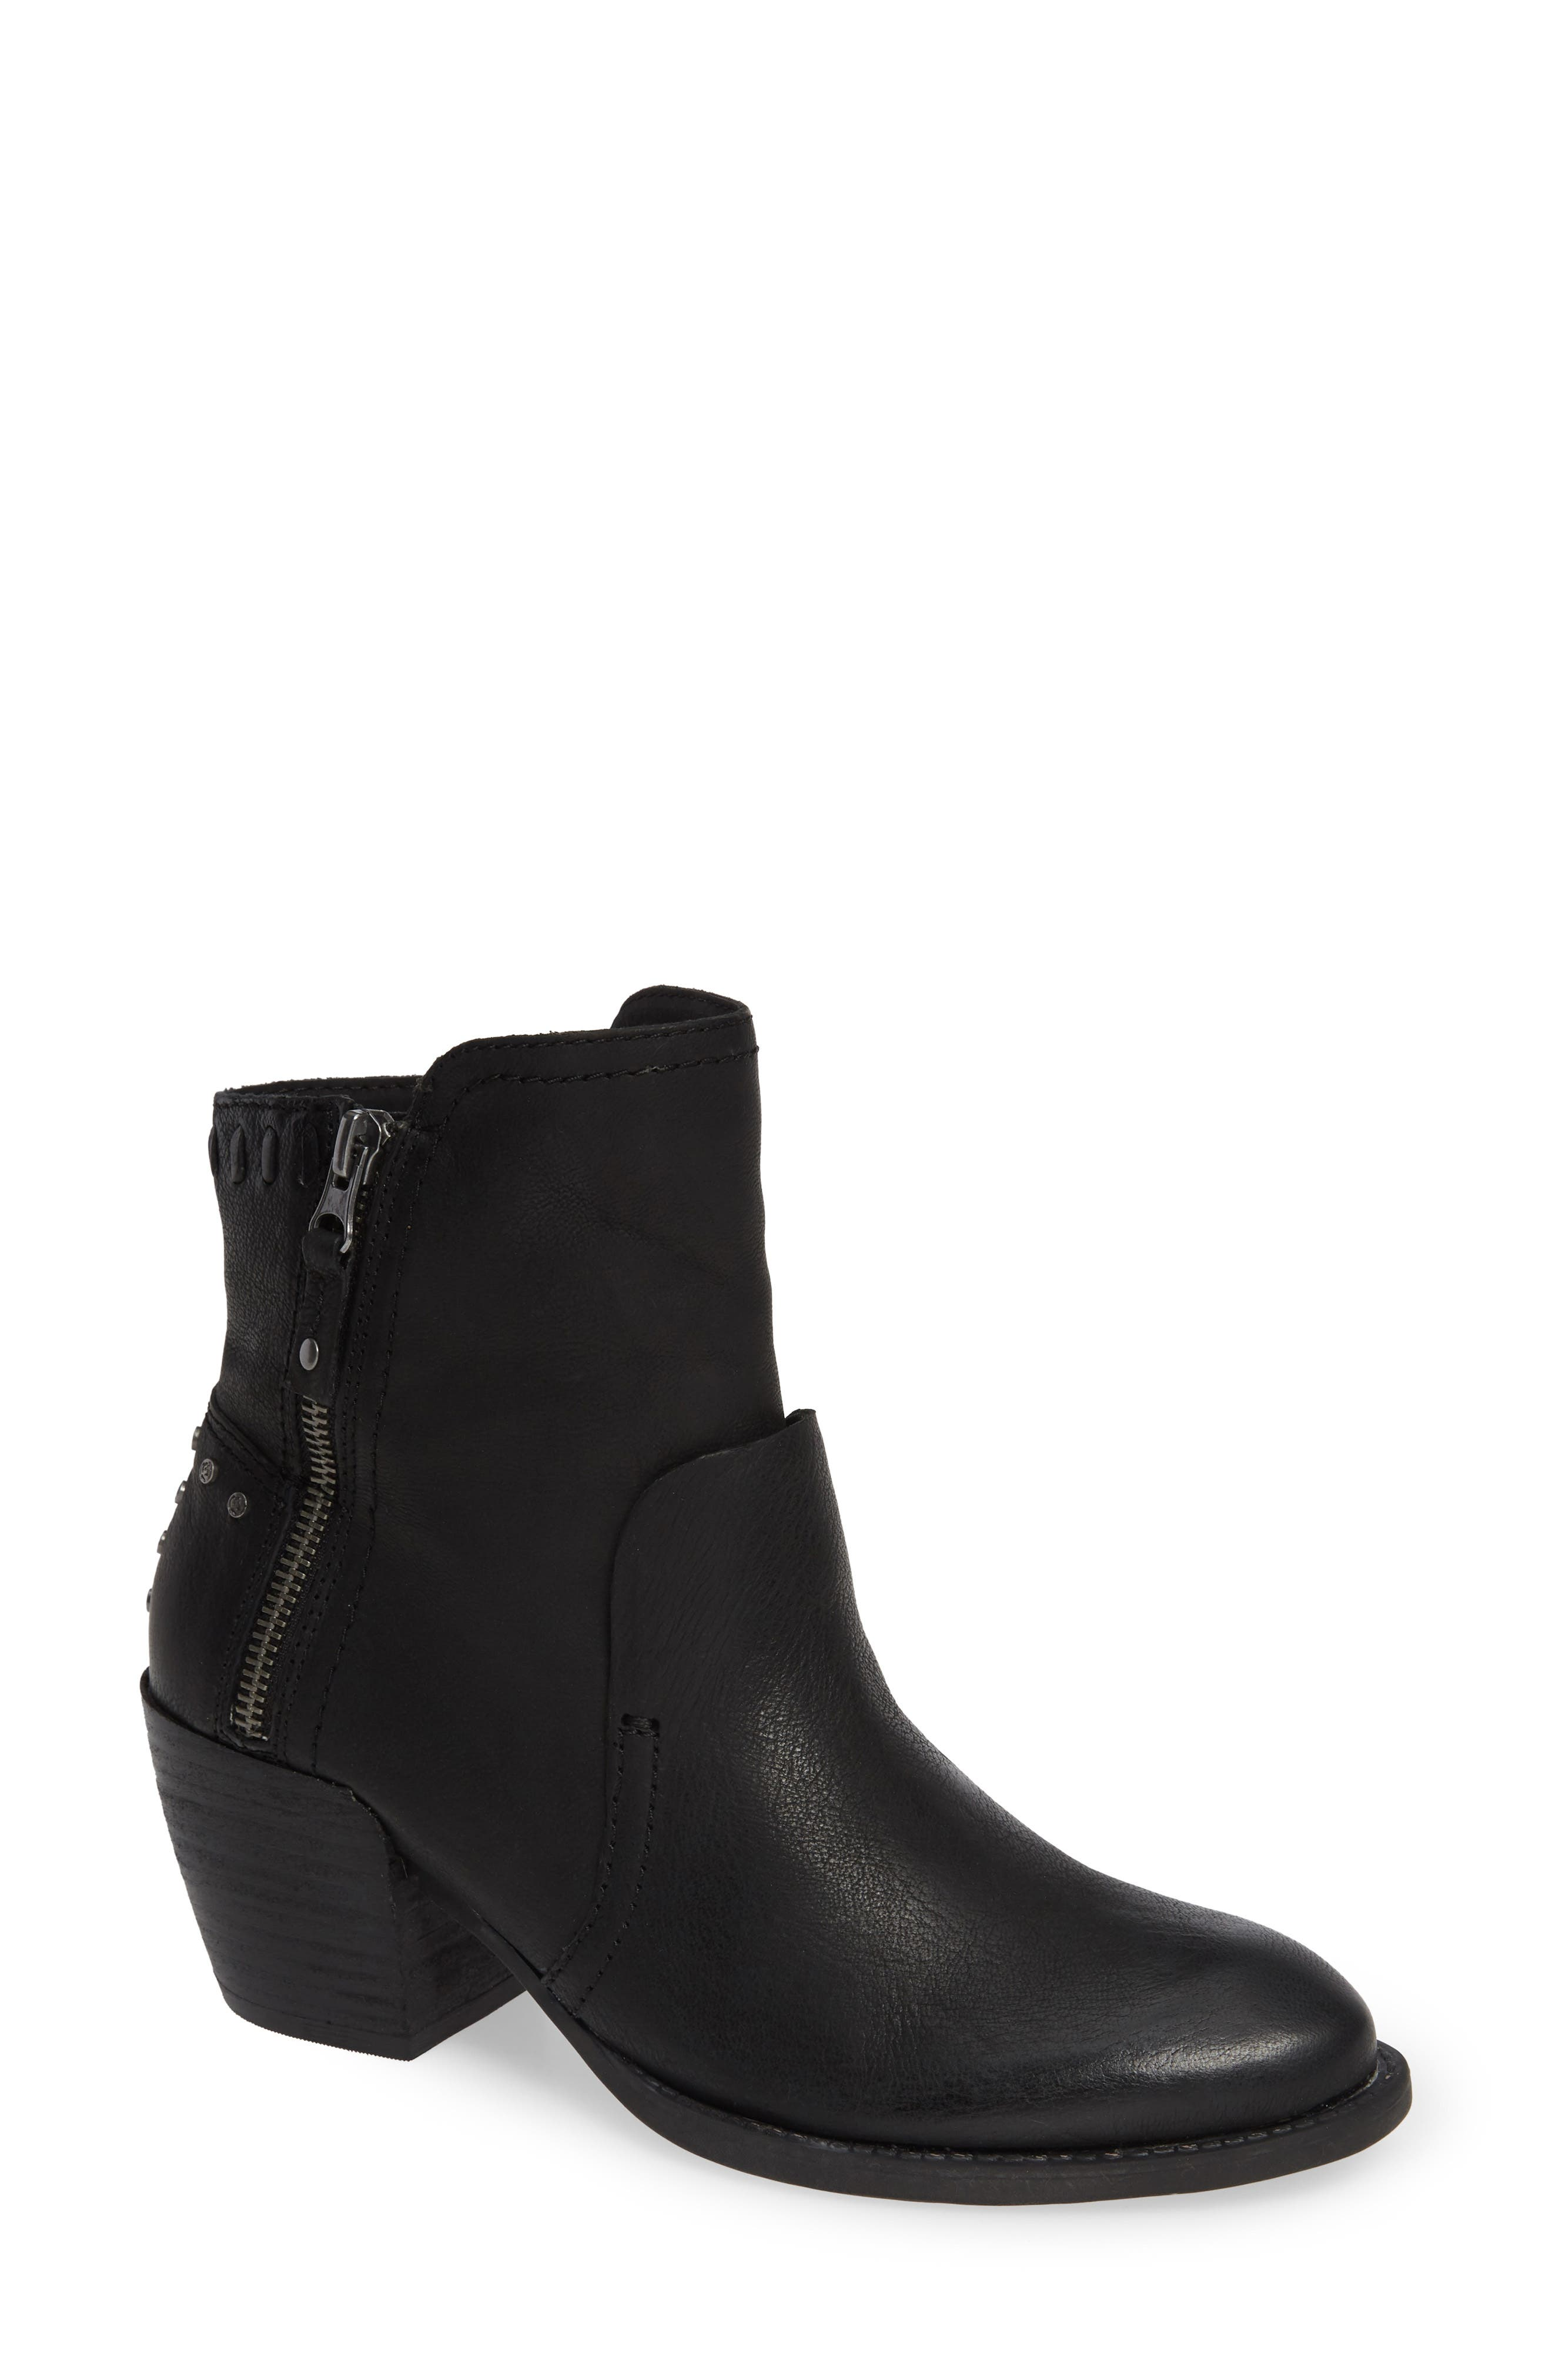 Red Eye Bootie,                         Main,                         color, BLACK LEATHER